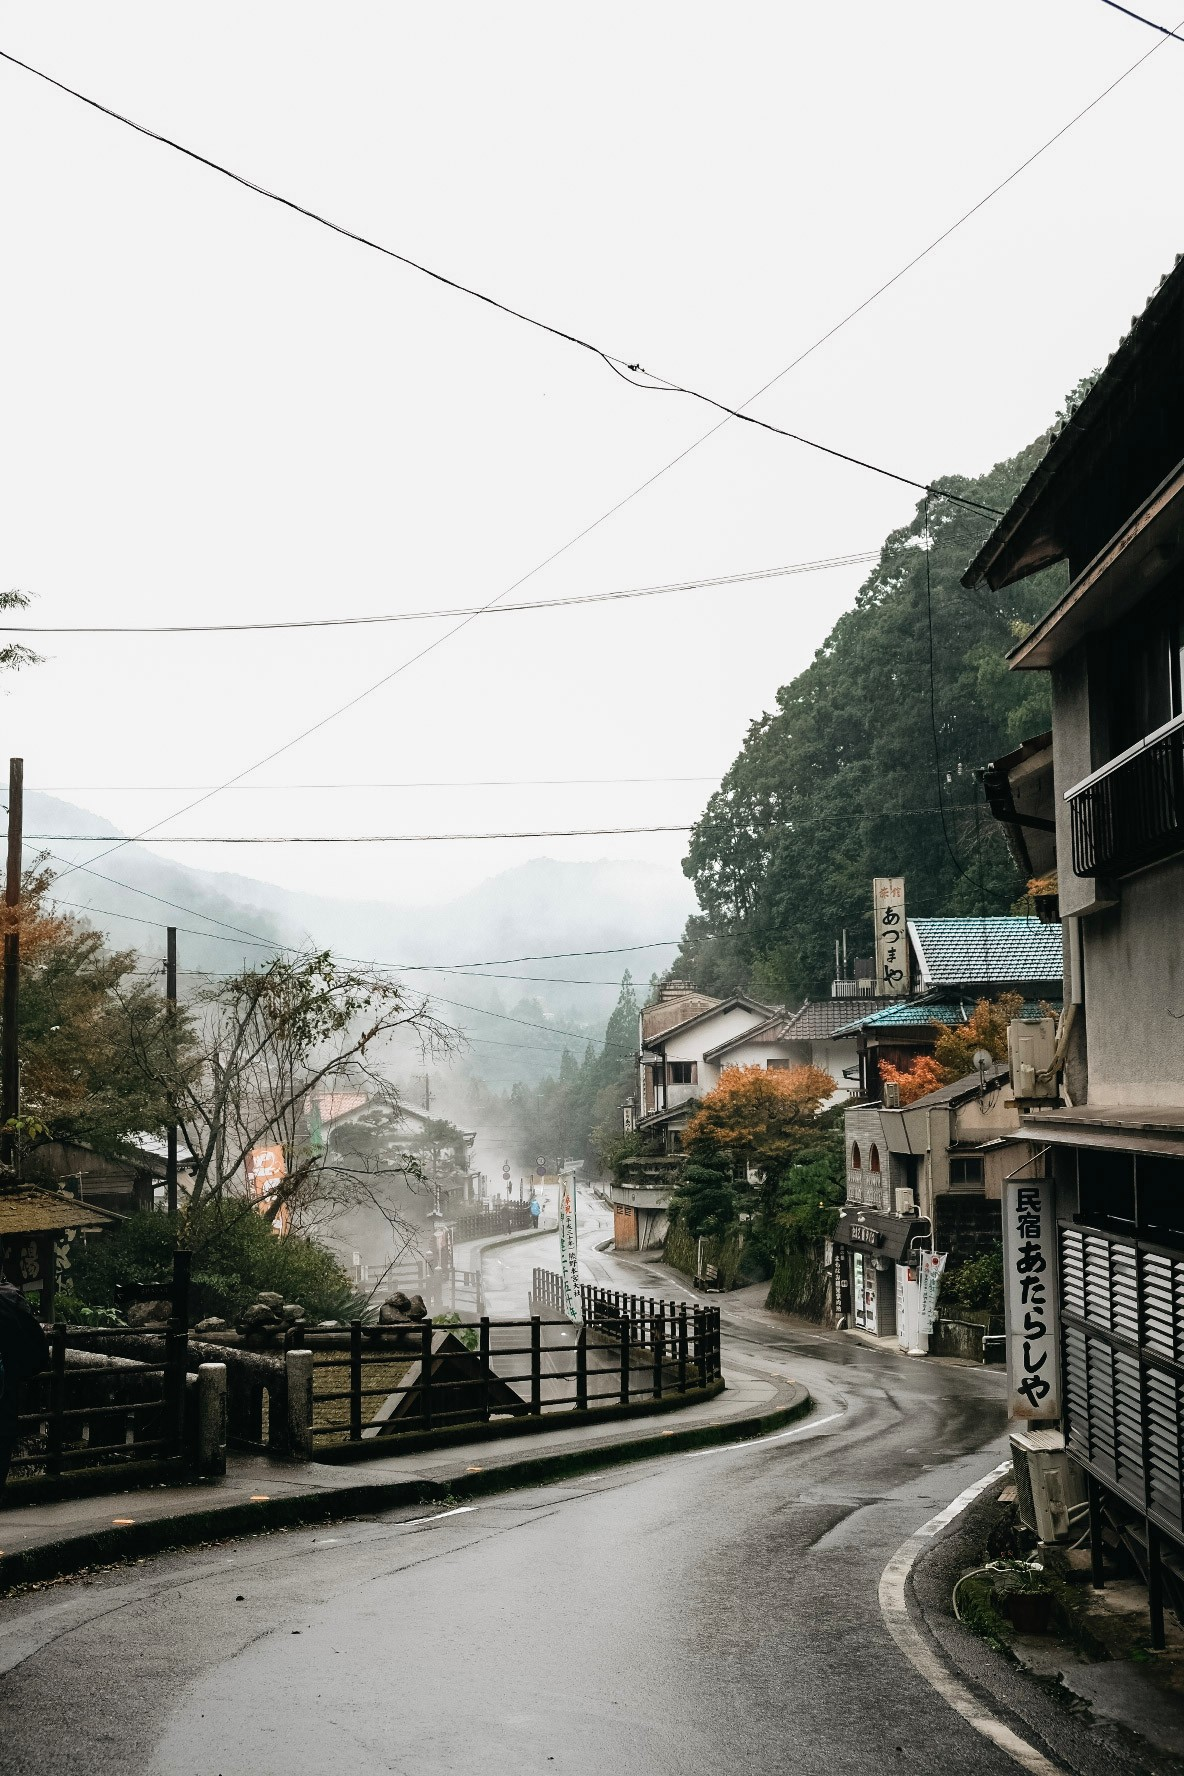 The charming town of Yunomine